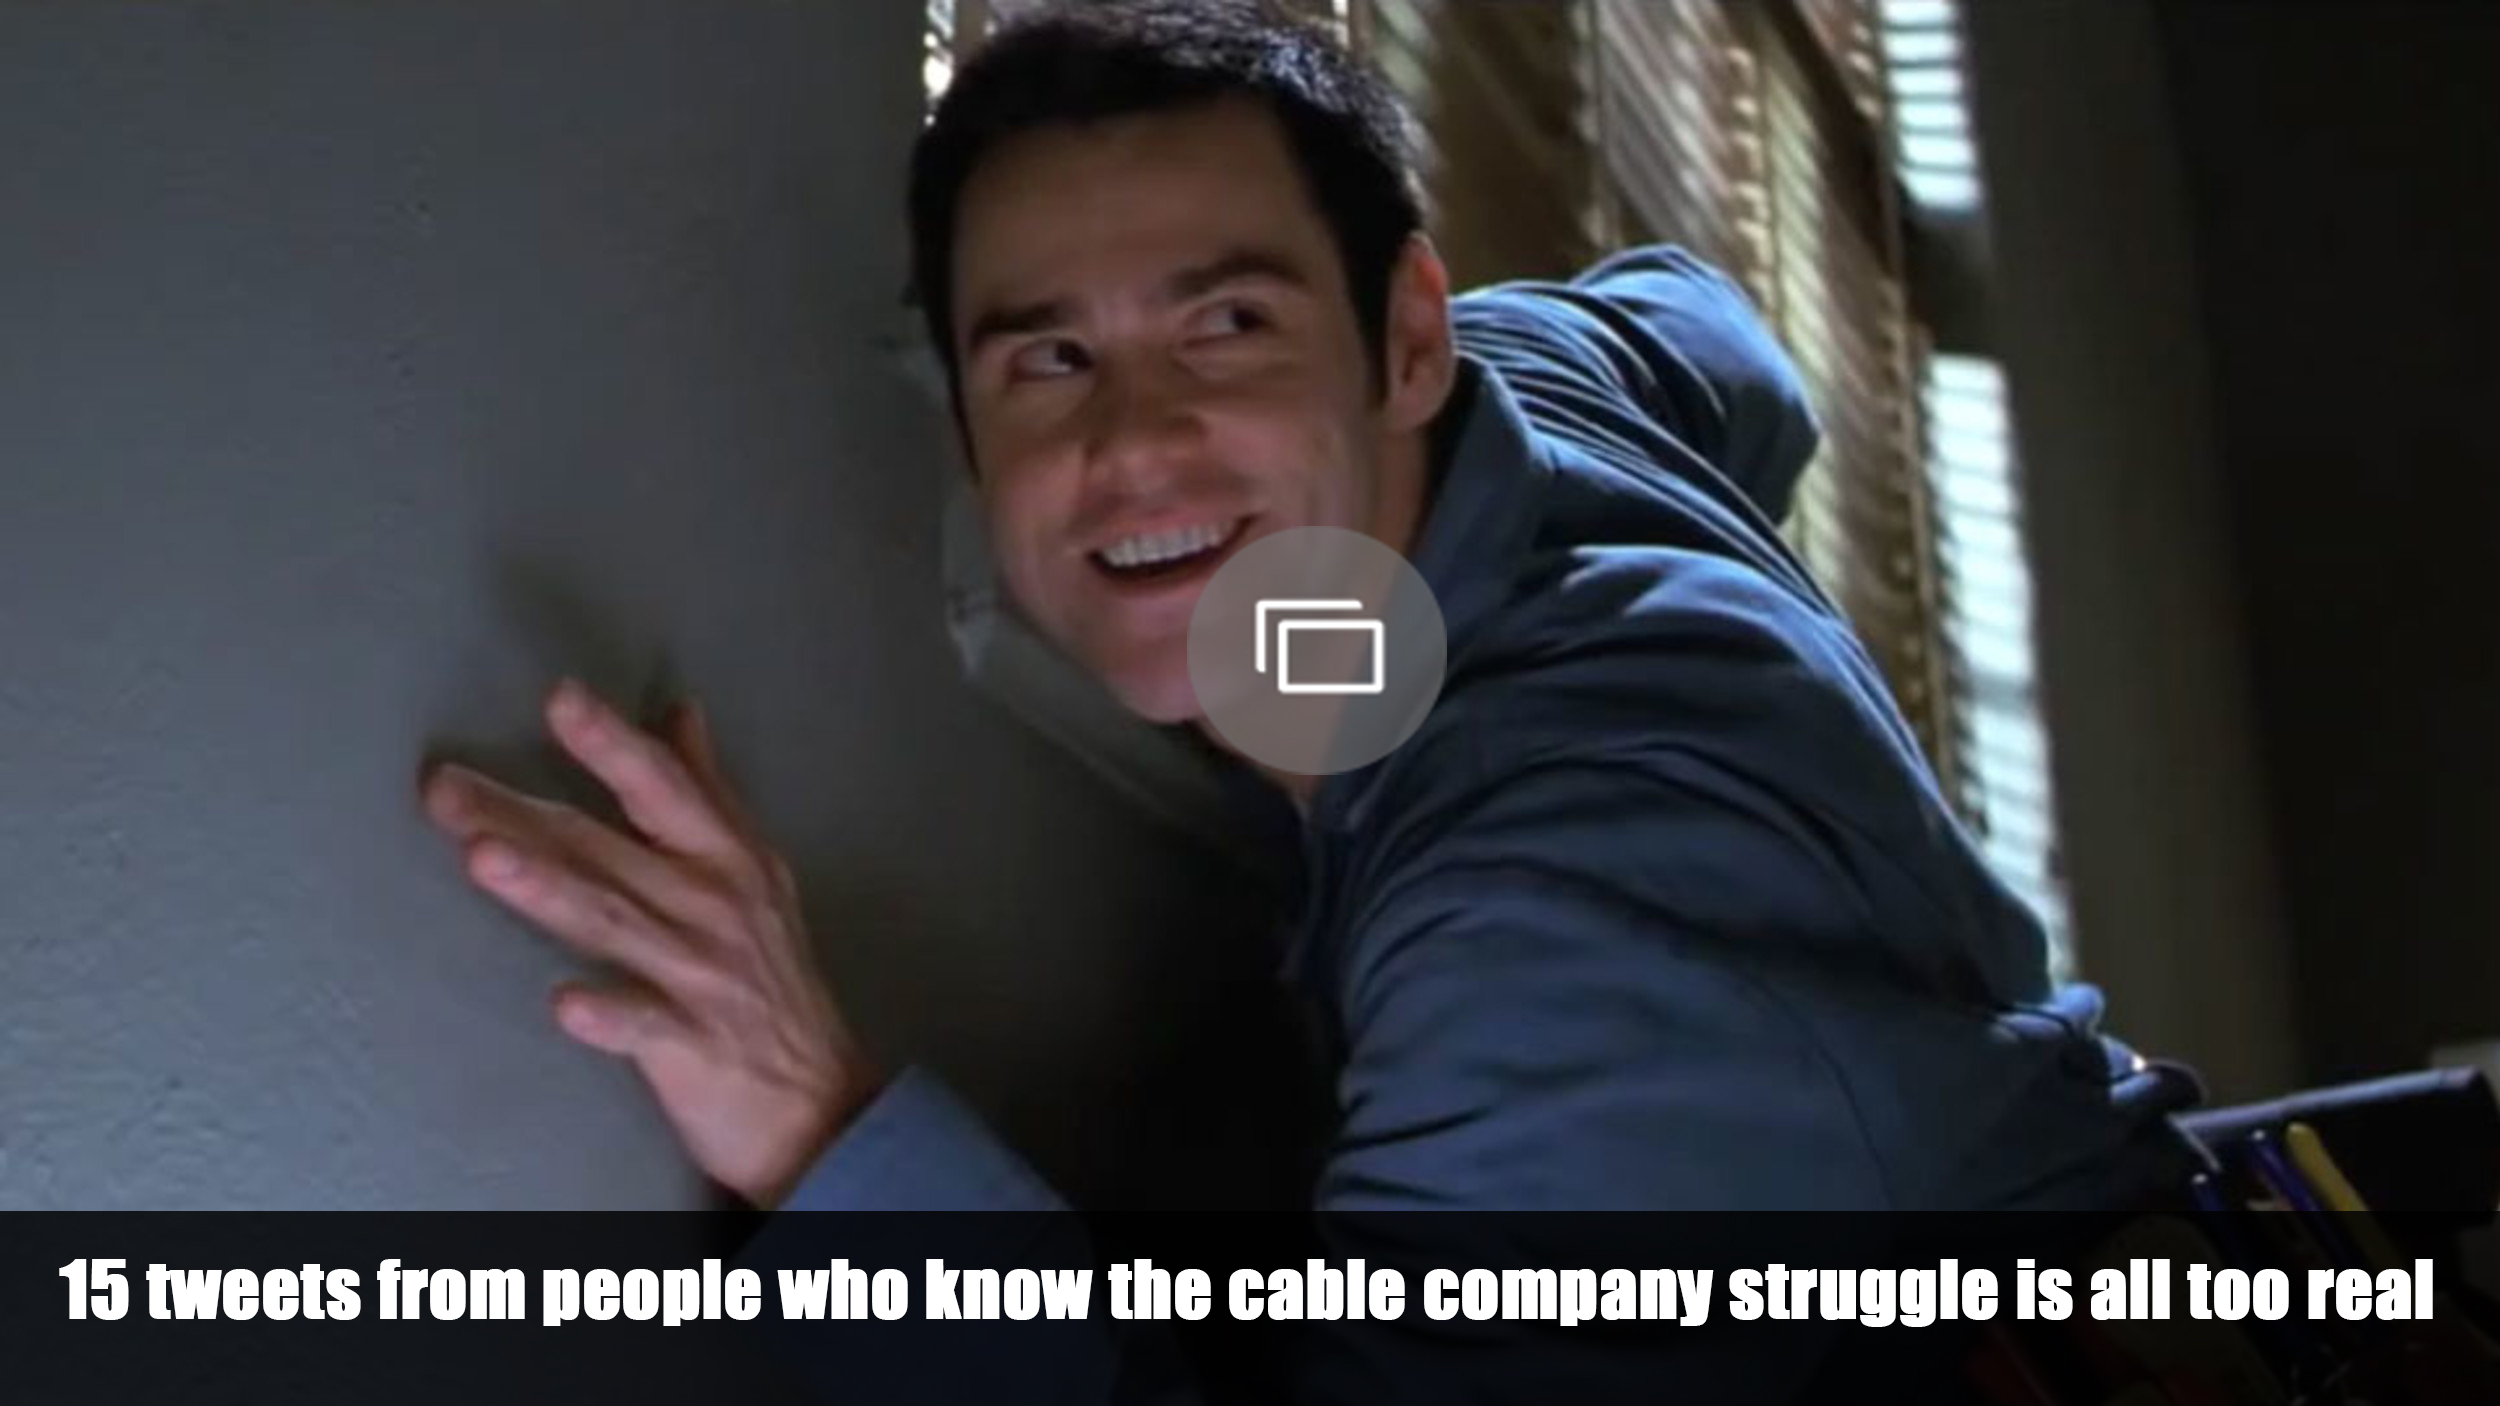 Cable company twitter